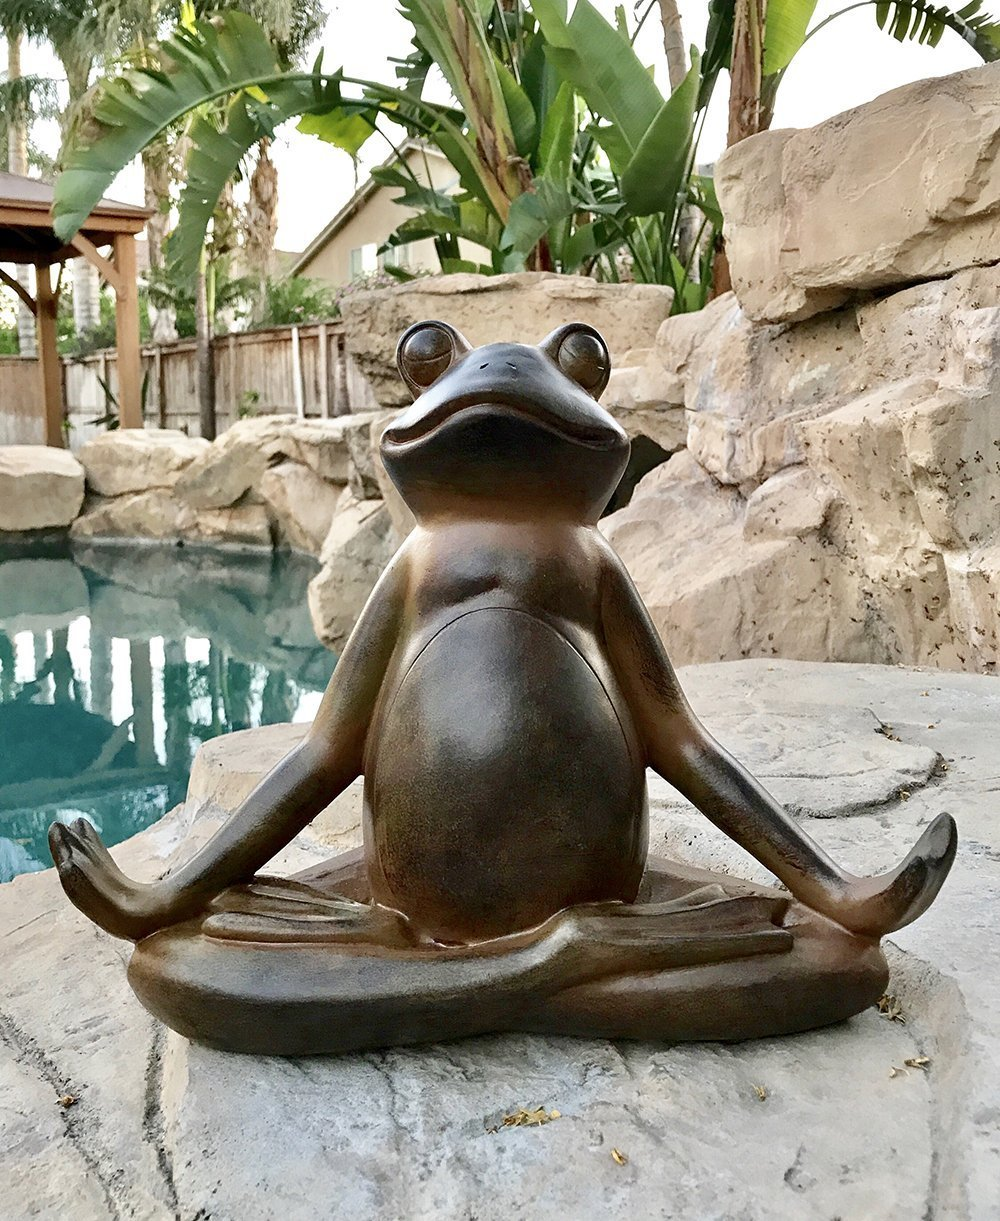 Pacific Giftware The Inner Peace of A Frog Yoga Toad in Meditation Figurine Collectible Sculpture Garden Decor 11 inch Tall